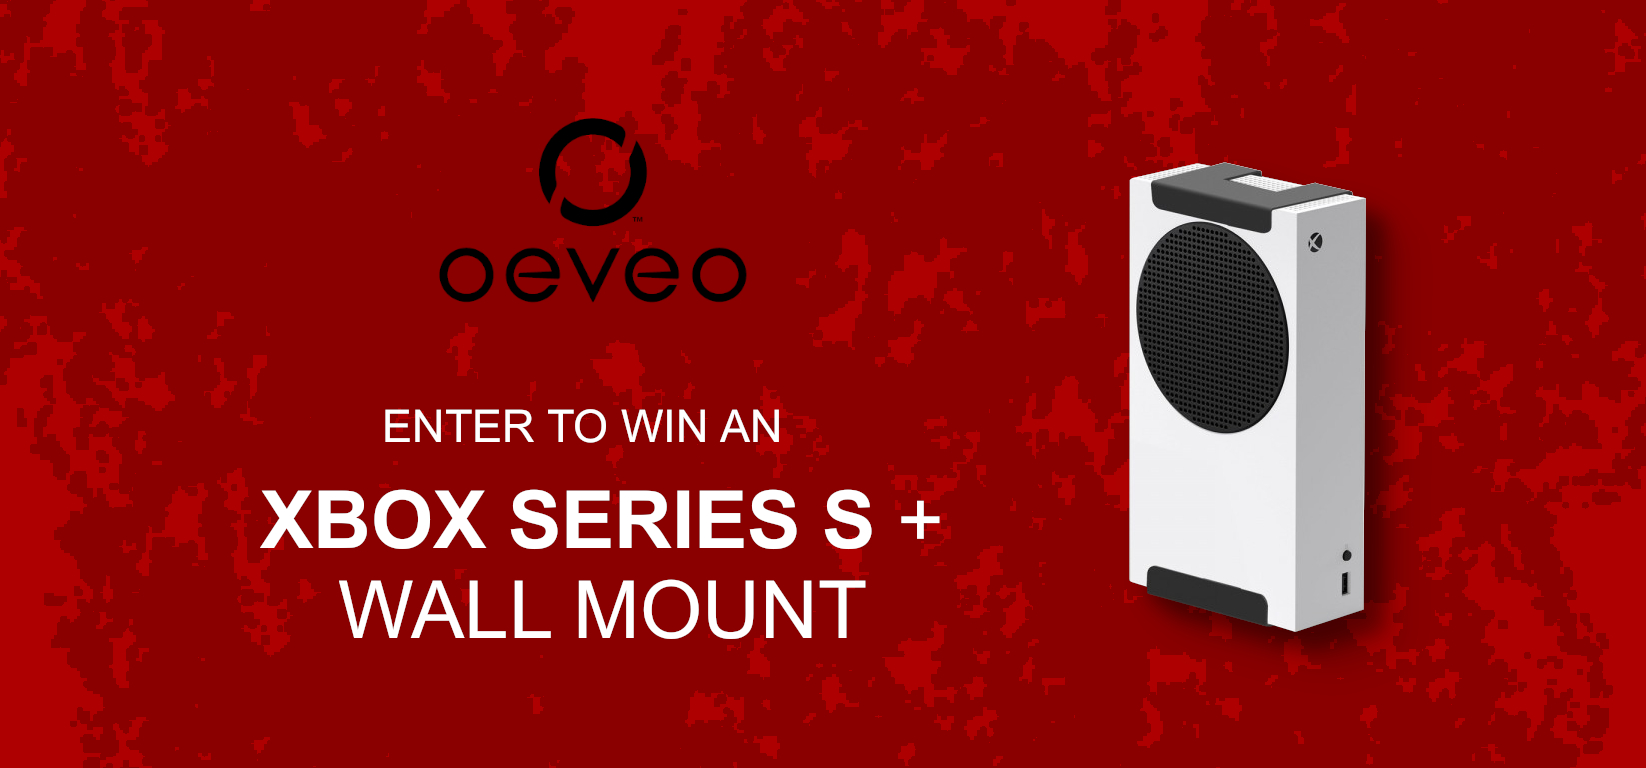 Enter to Win an Xbox Series S and Wall Mount from Oeveo